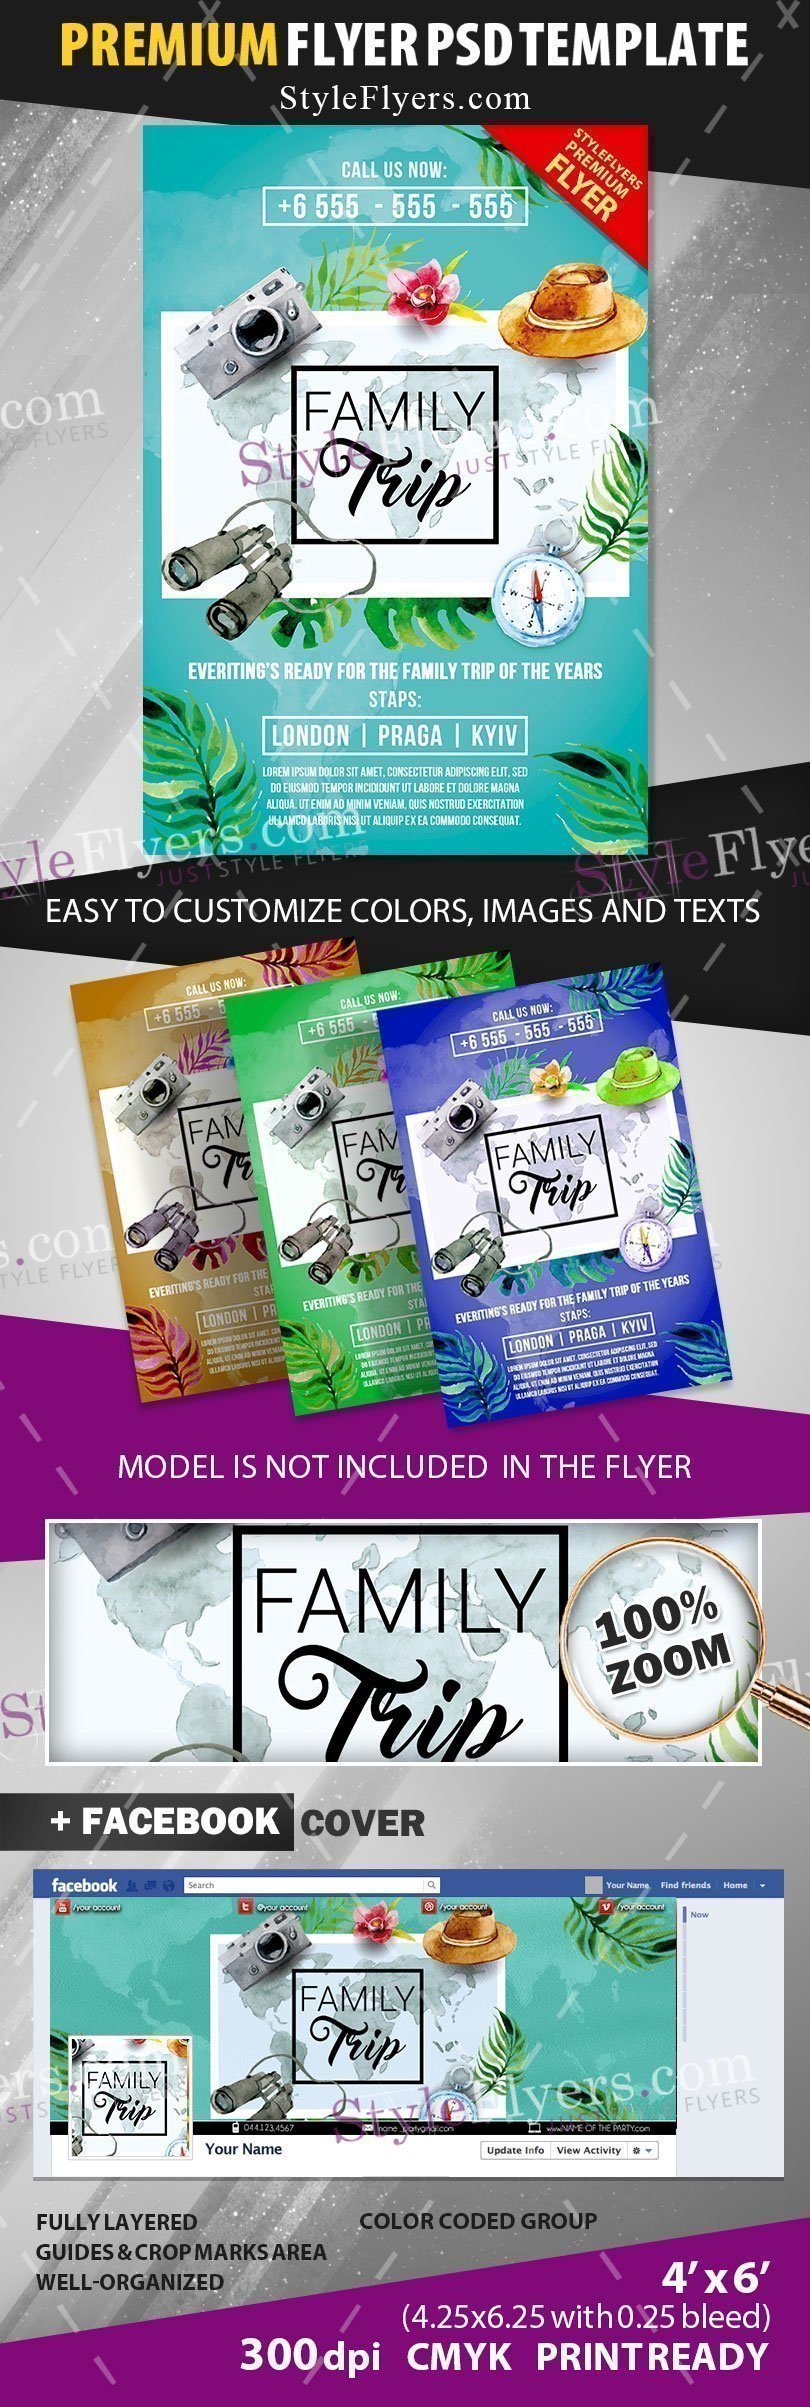 preview_family_trip_Flyer_premium_template